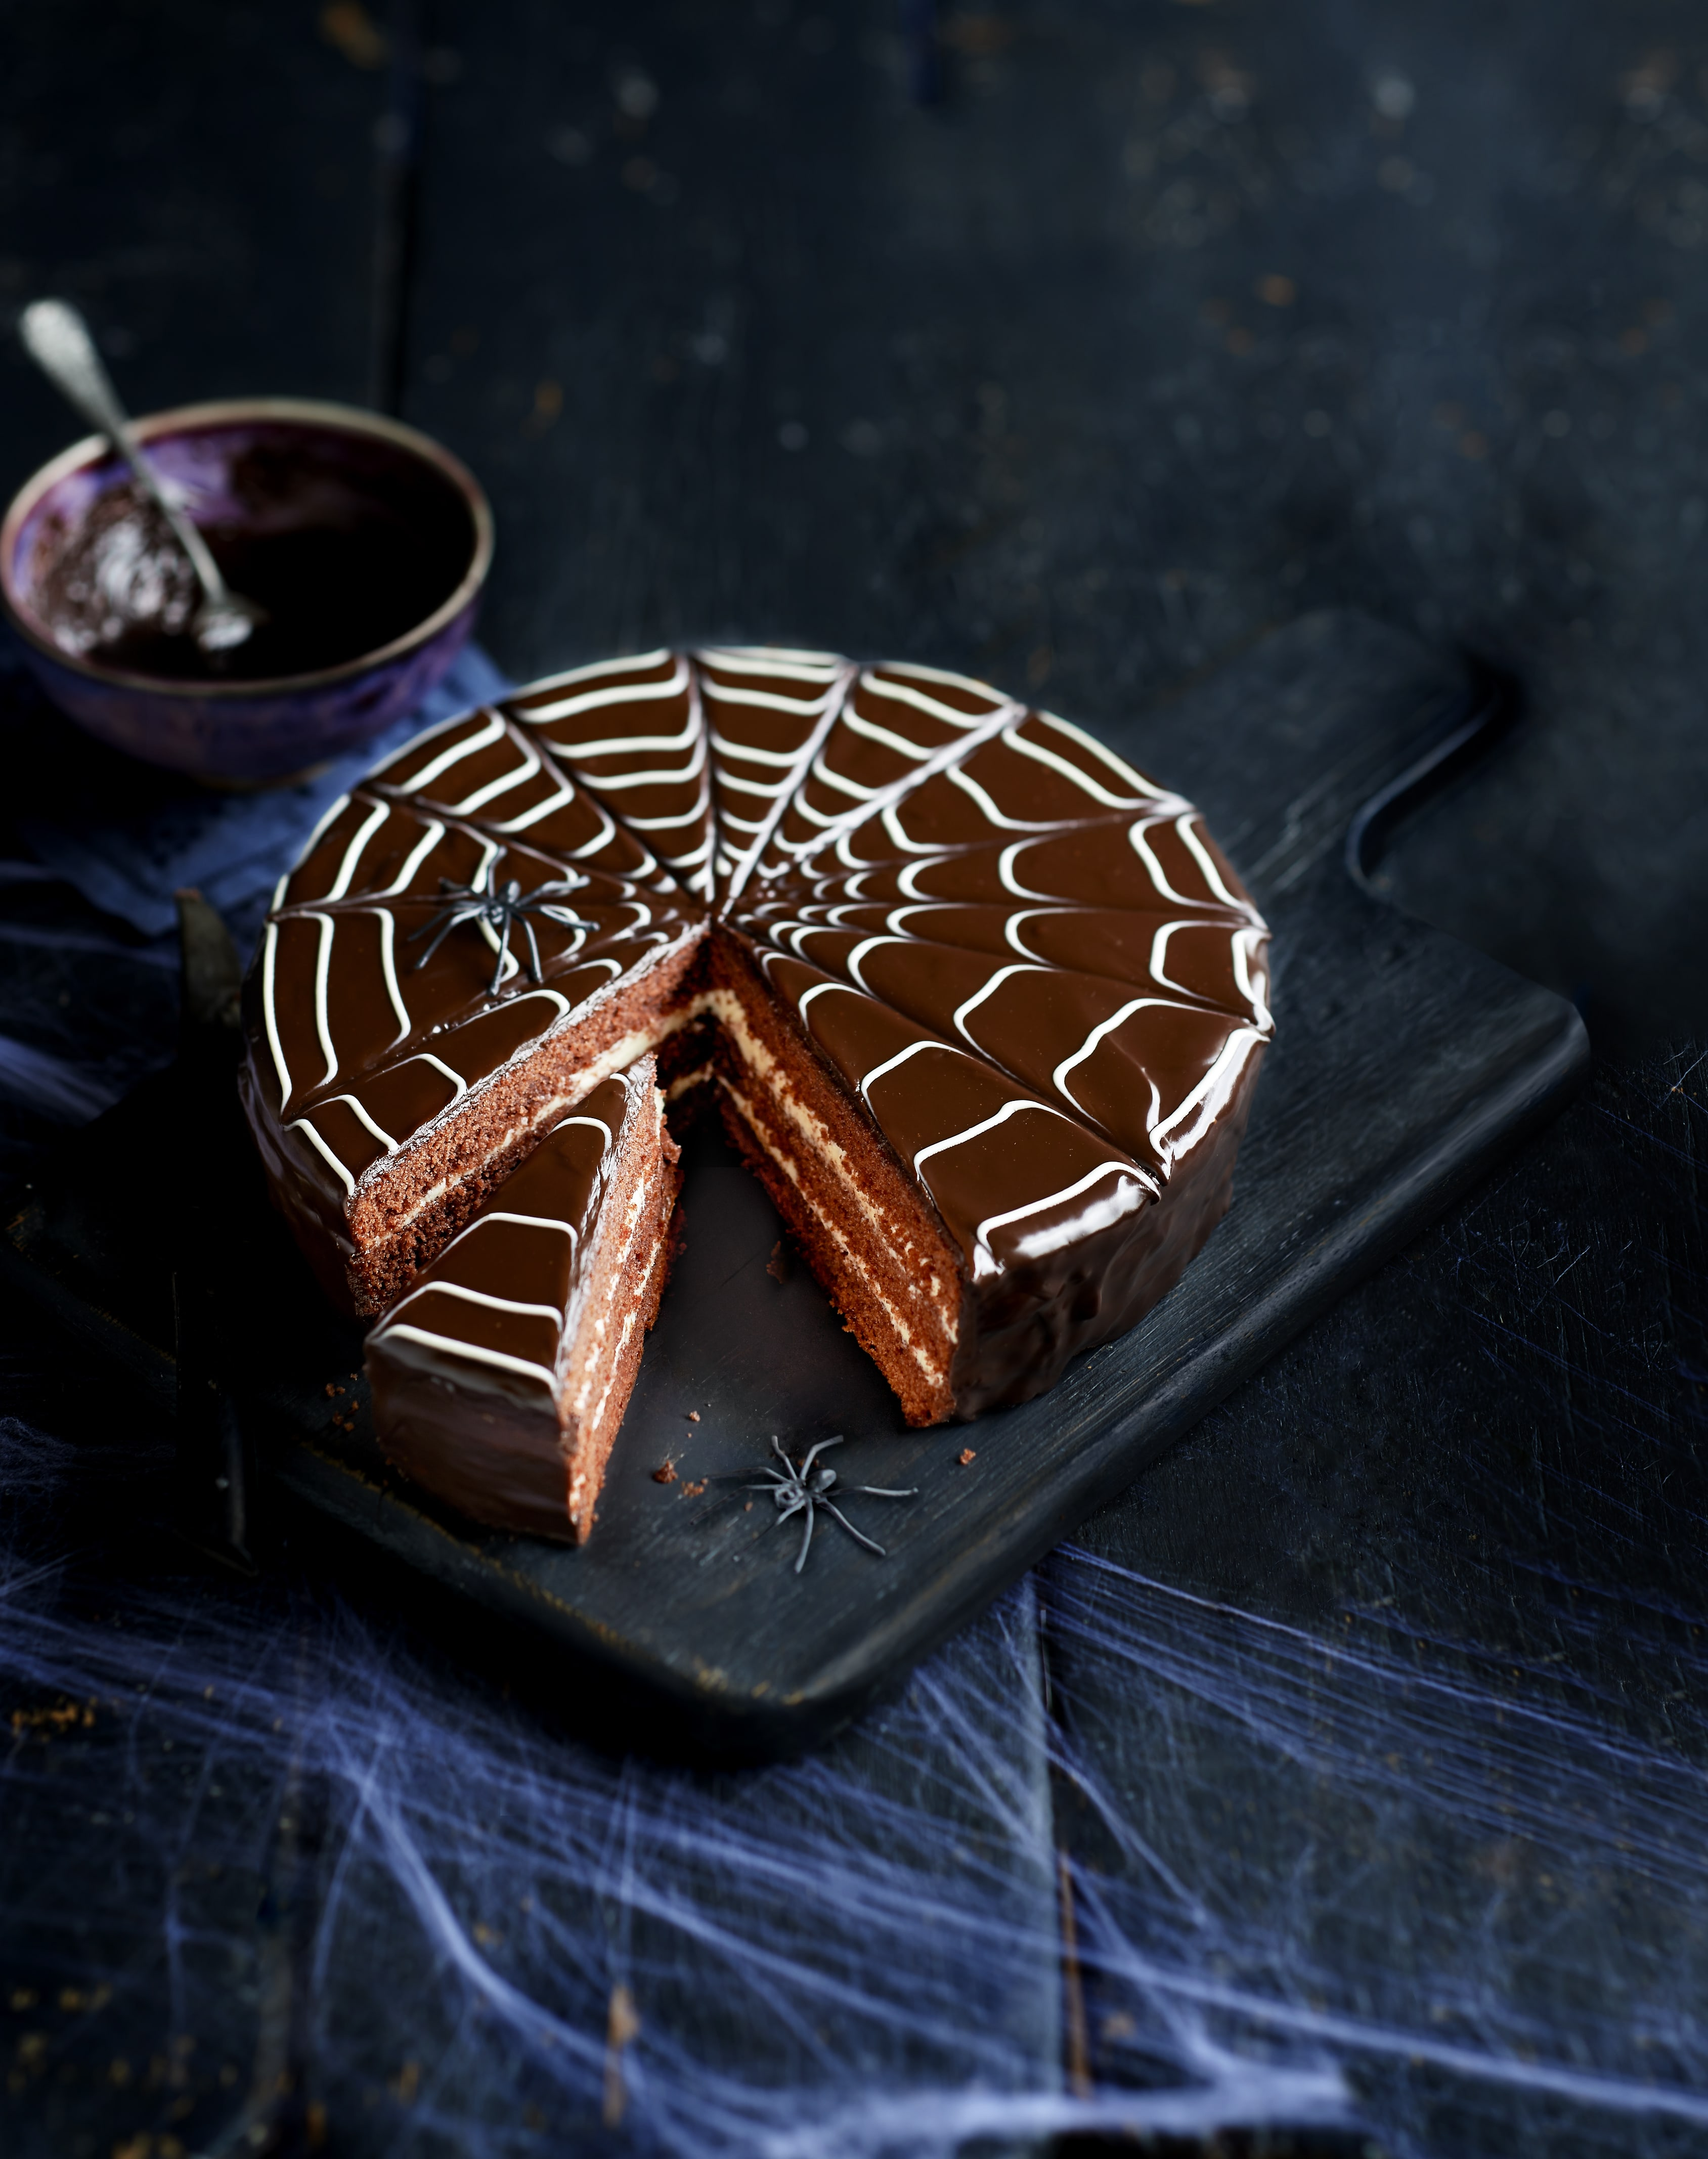 Chocolate spider web cake for Halloween